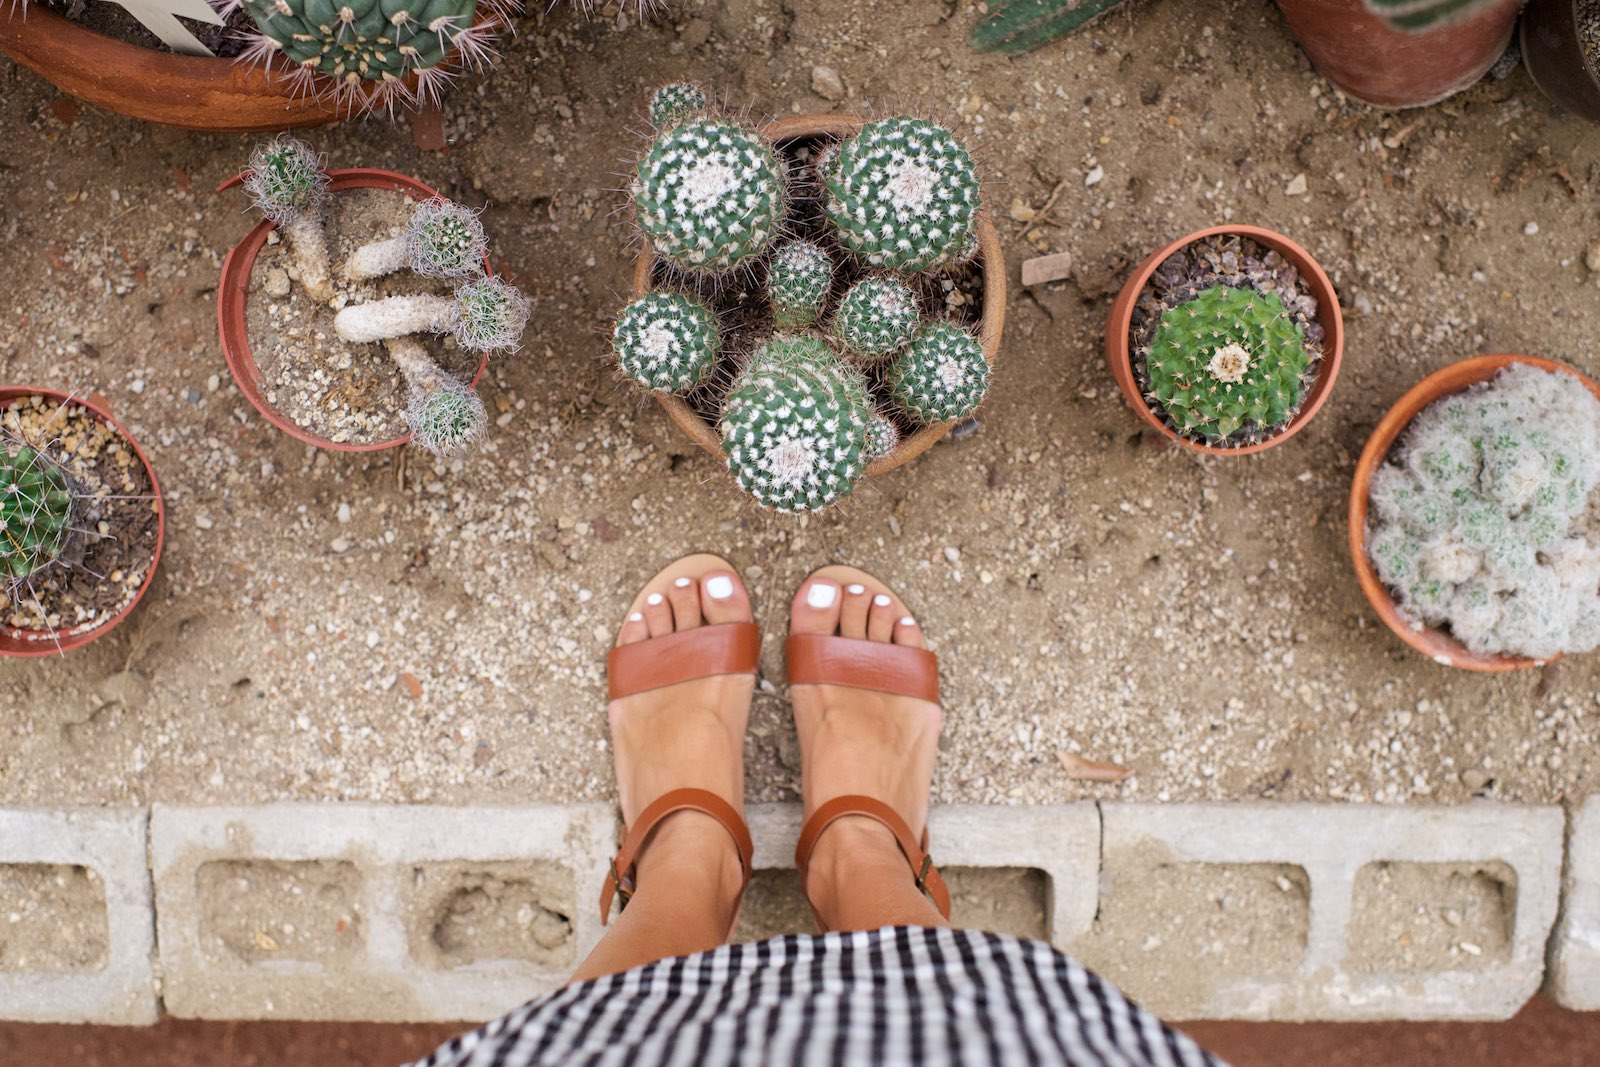 Shoes to pack on your travels